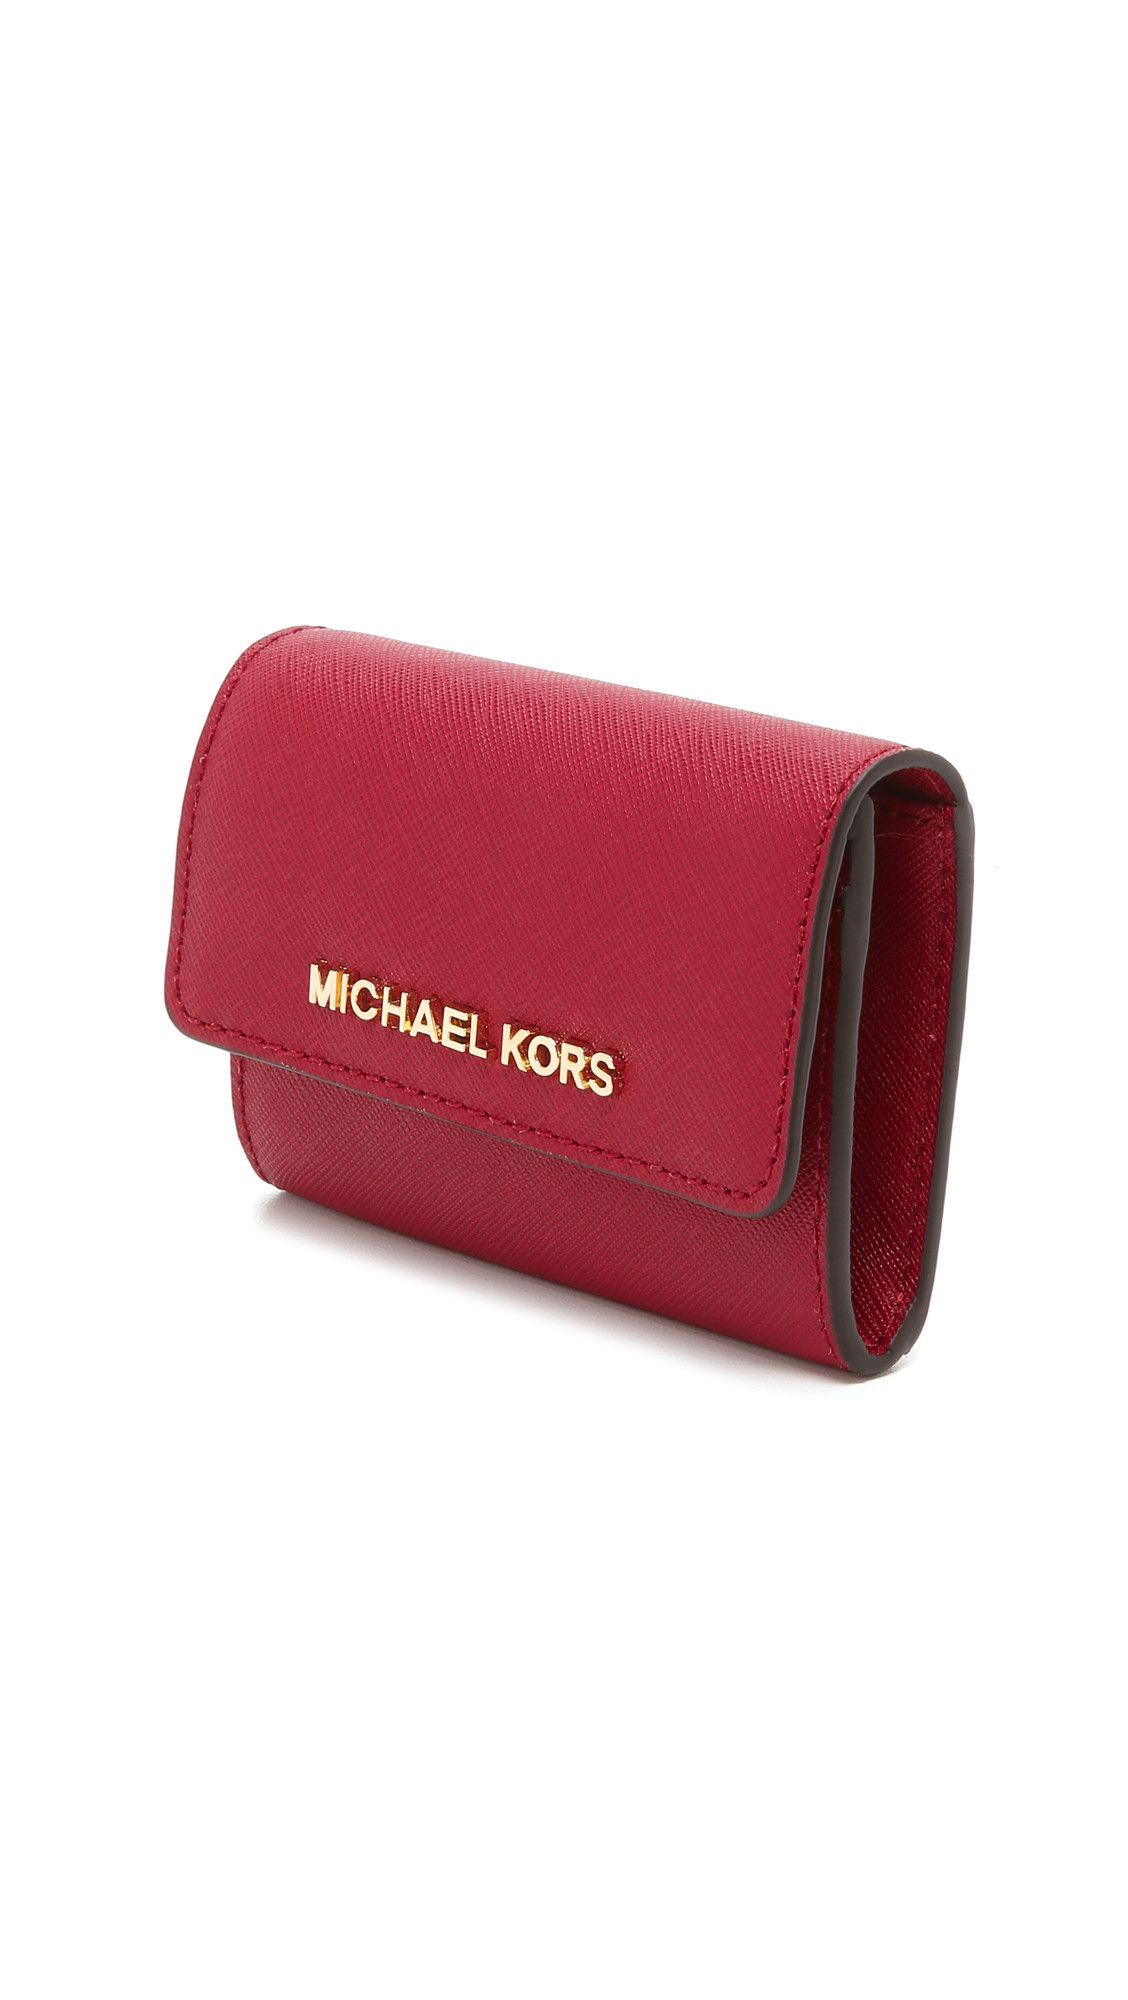 51fb825efa05a3 MICHAEL Michael Kors Jet Set Coin Purse | Wish list | Michael kors ...